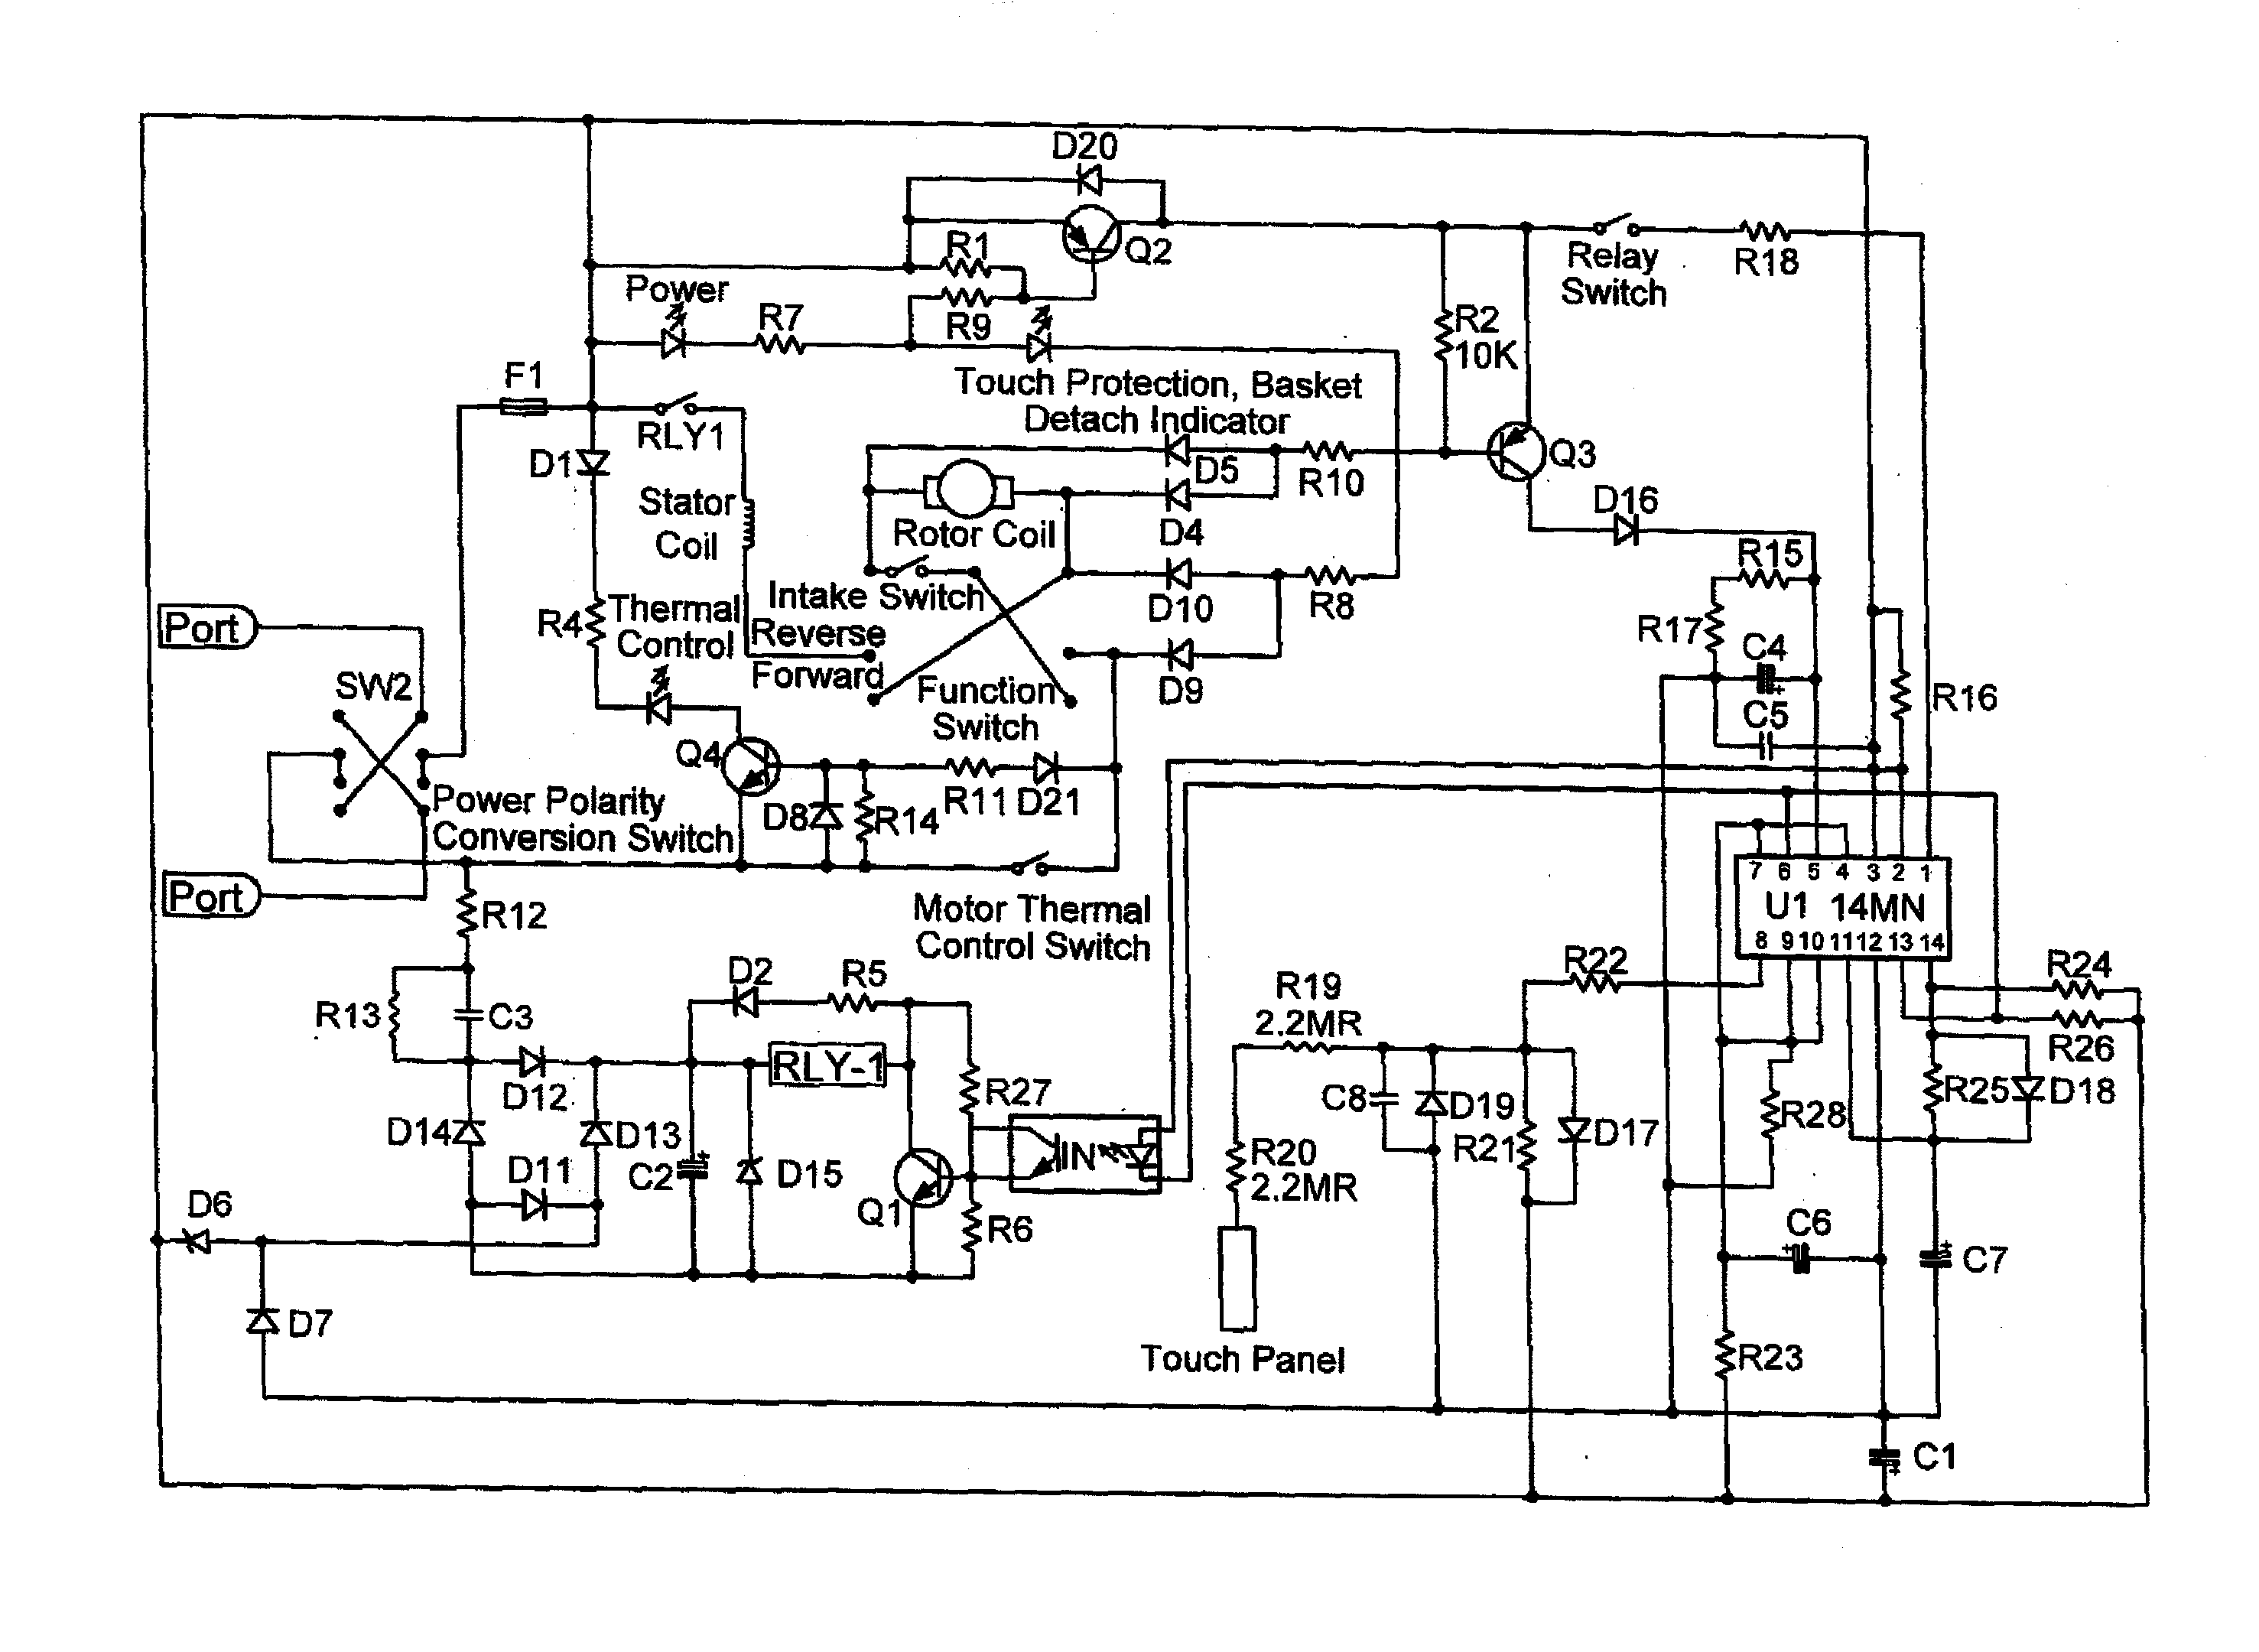 paper shredder motor wiring diagram   35 wiring diagram